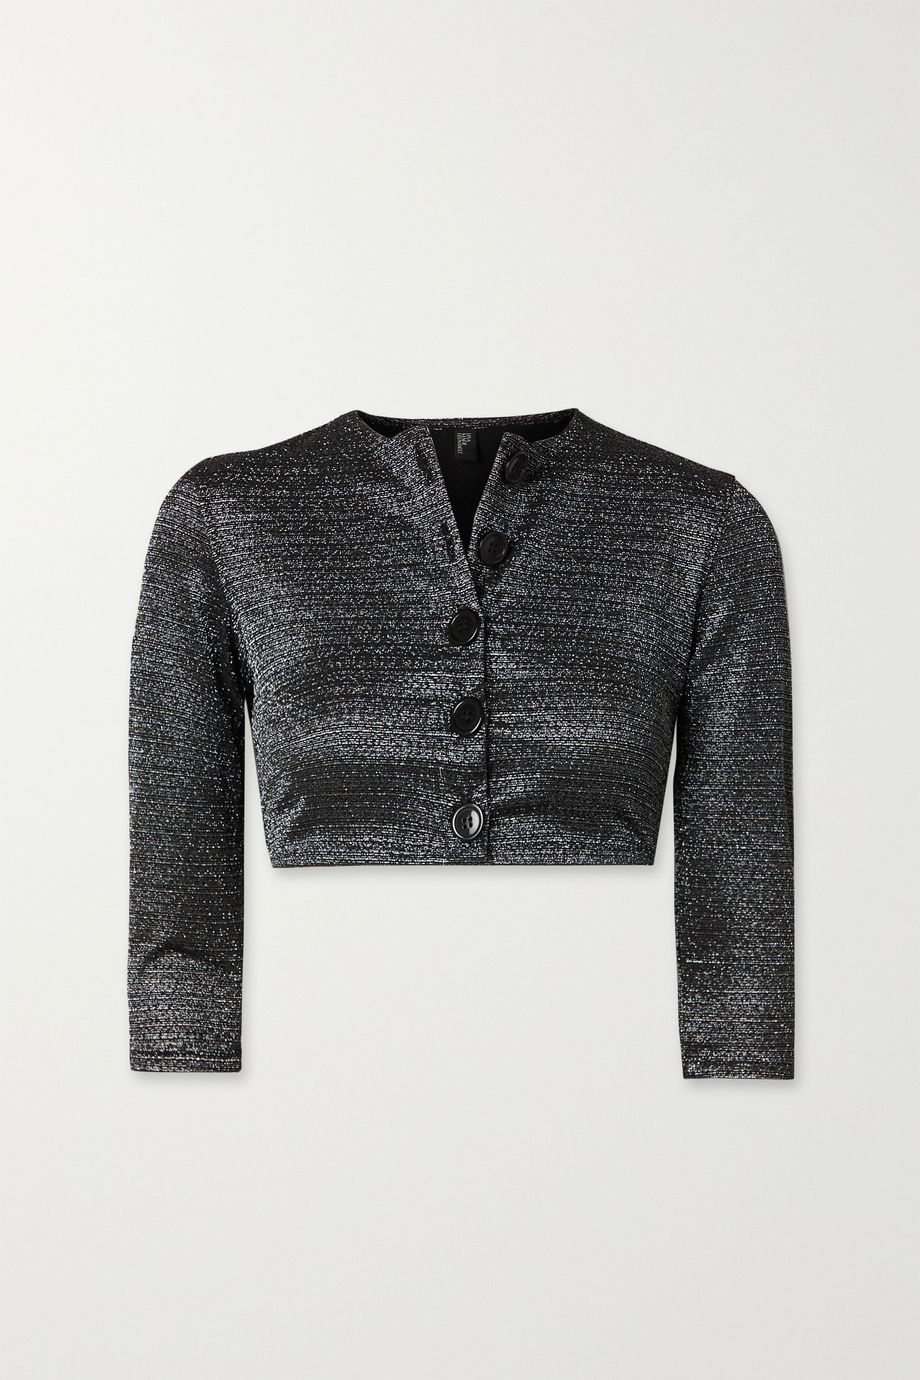 Lisa Marie Fernandez + NET SUSTAIN cropped metallic stretch cardigan